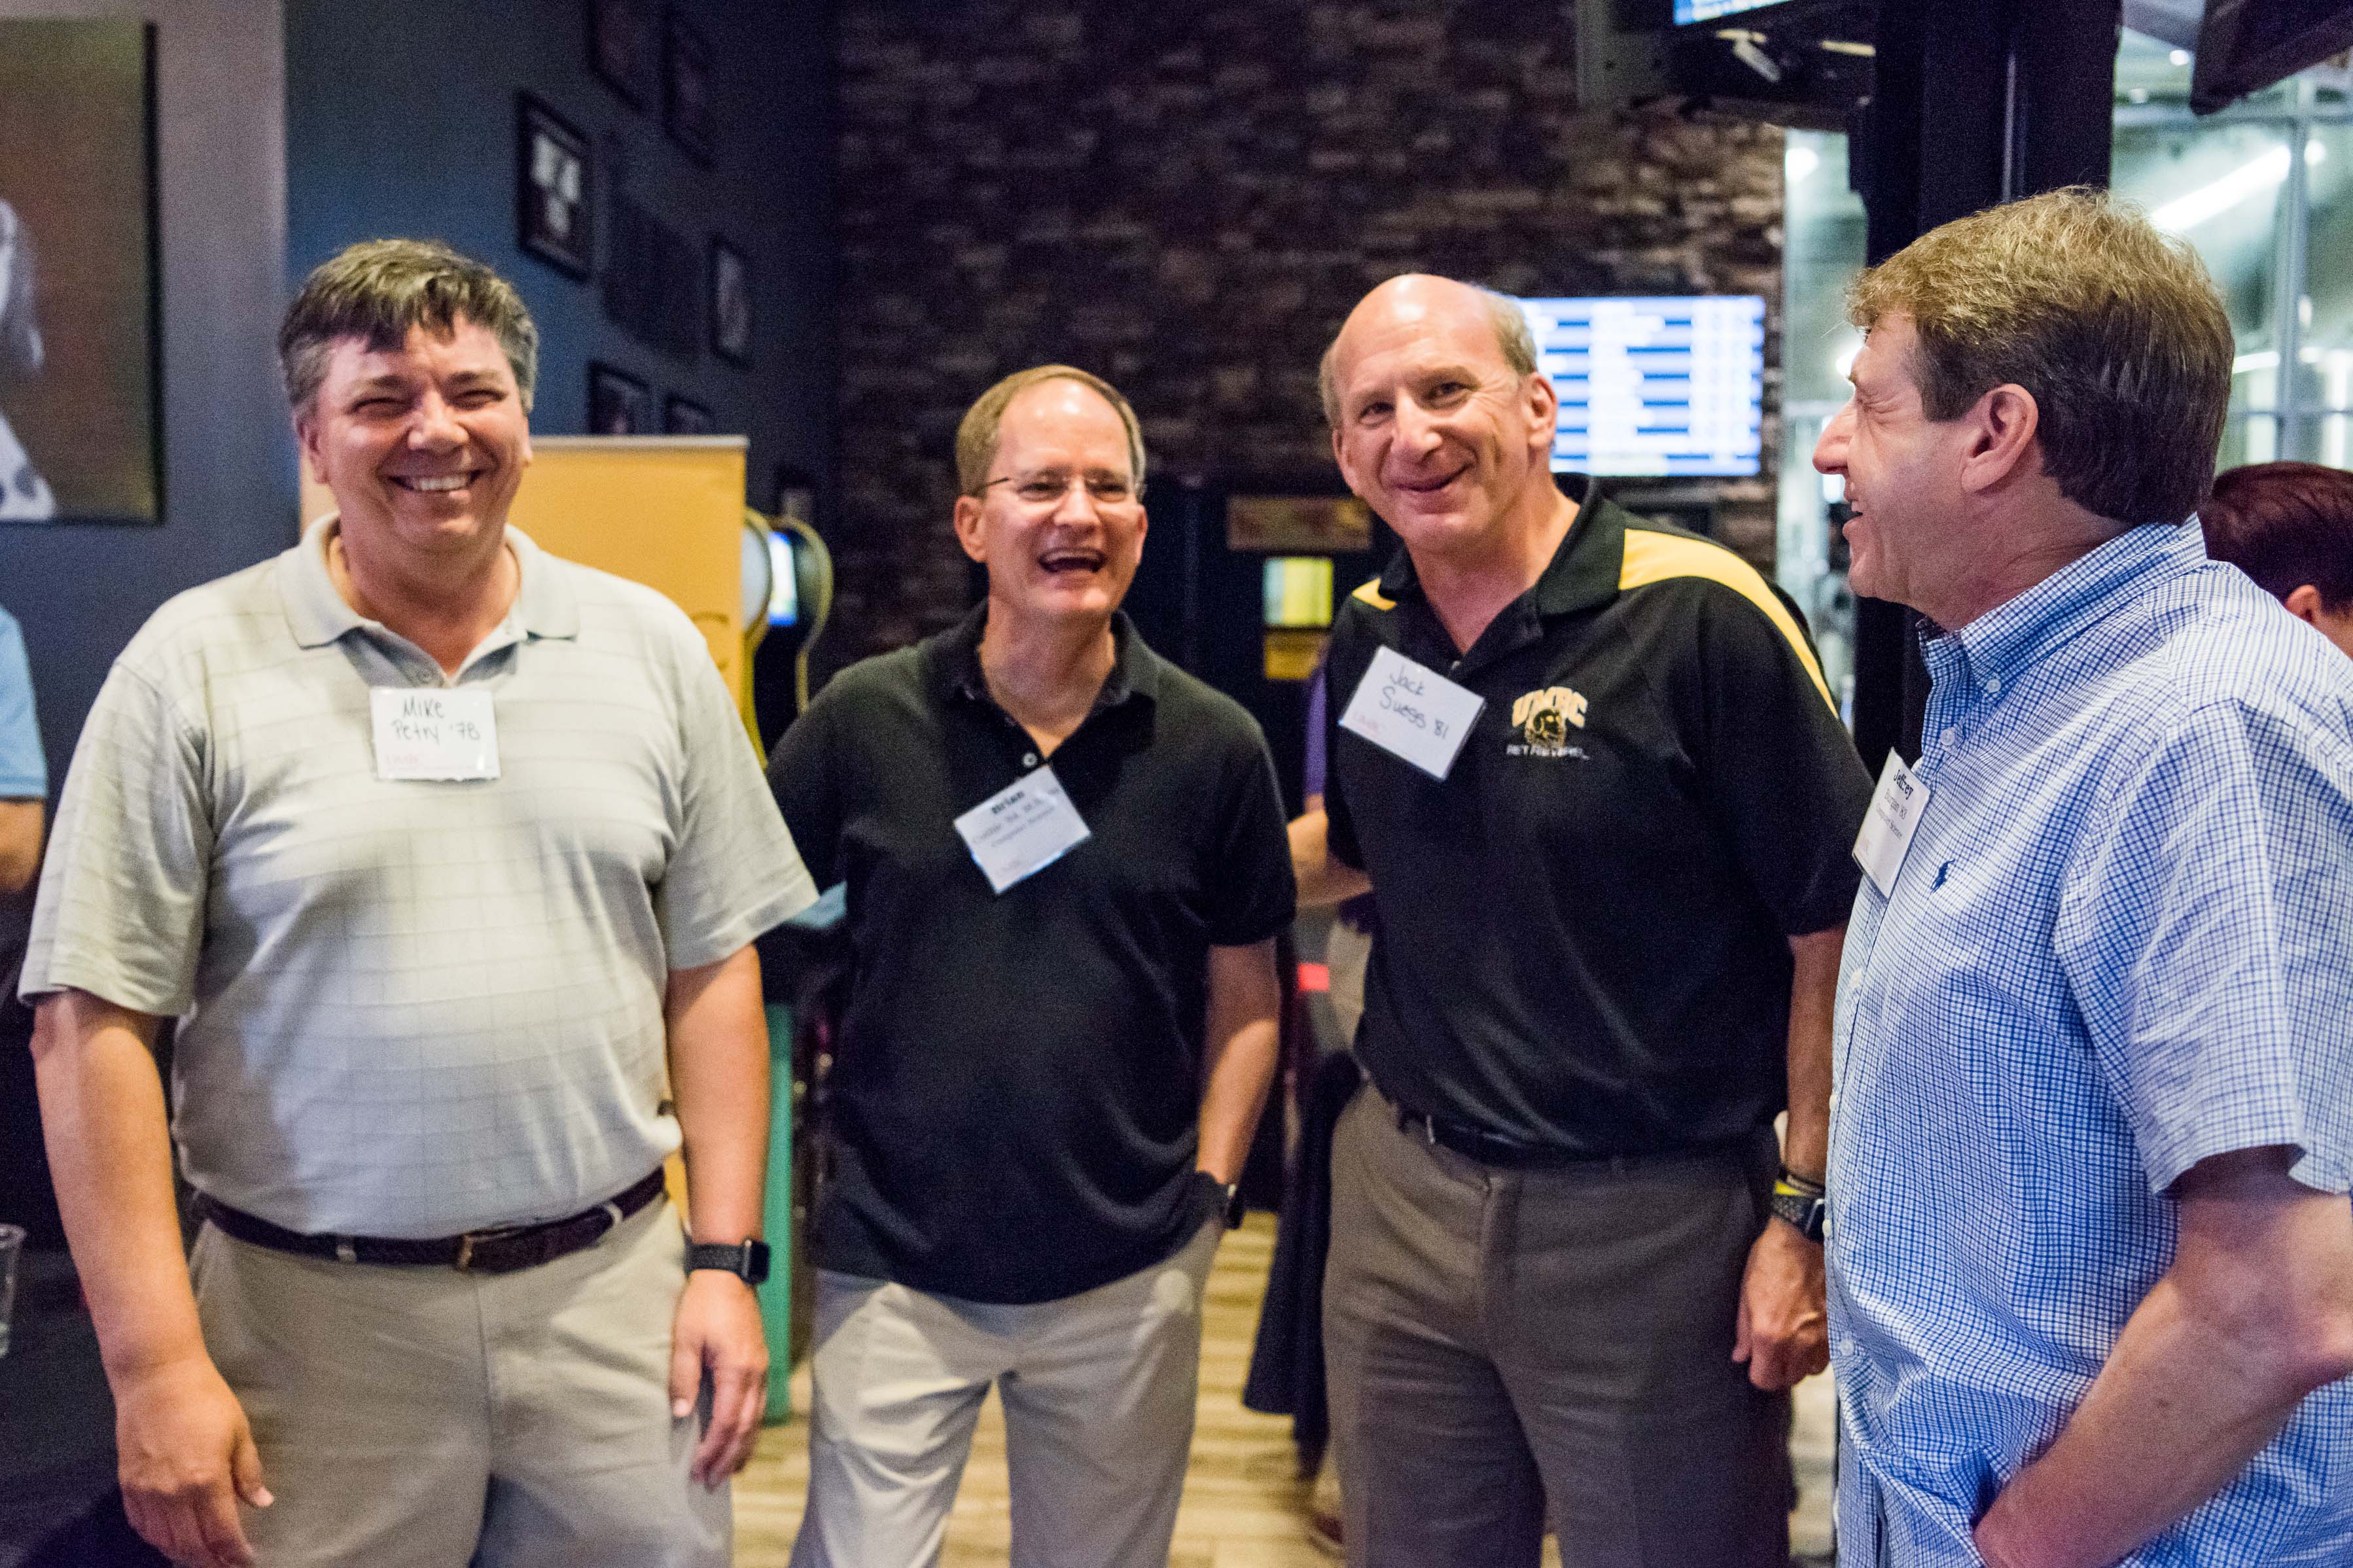 Group of men laughing together at Jailbreak happy hour